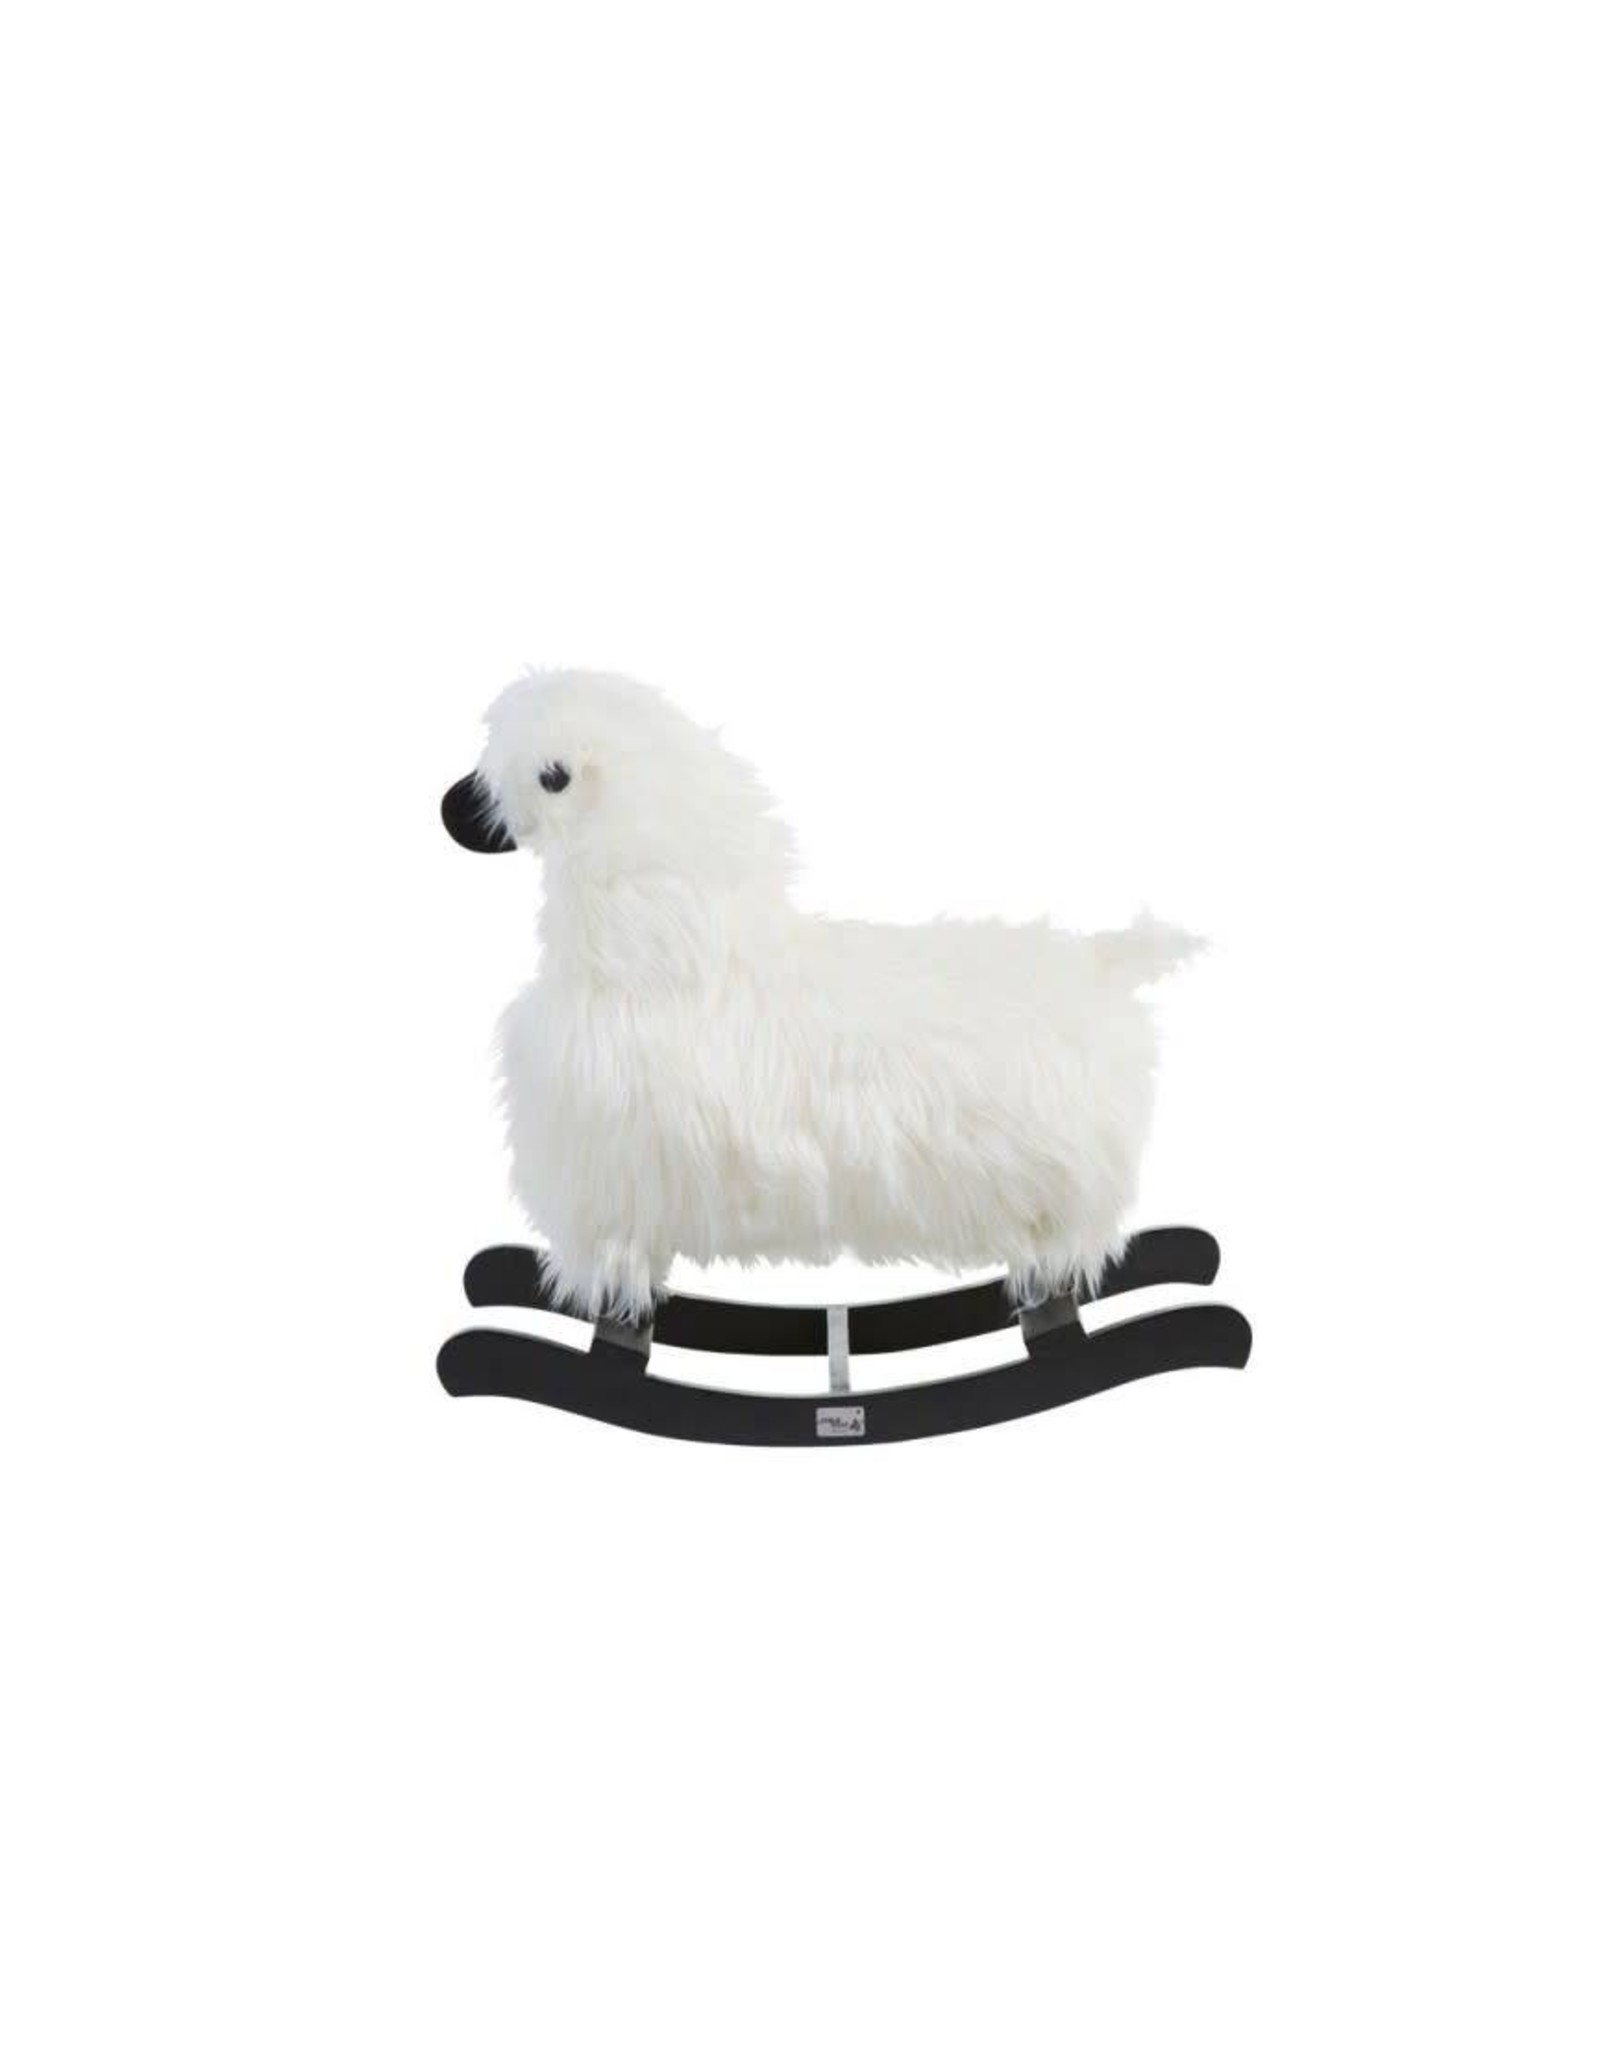 Rocking Sheep